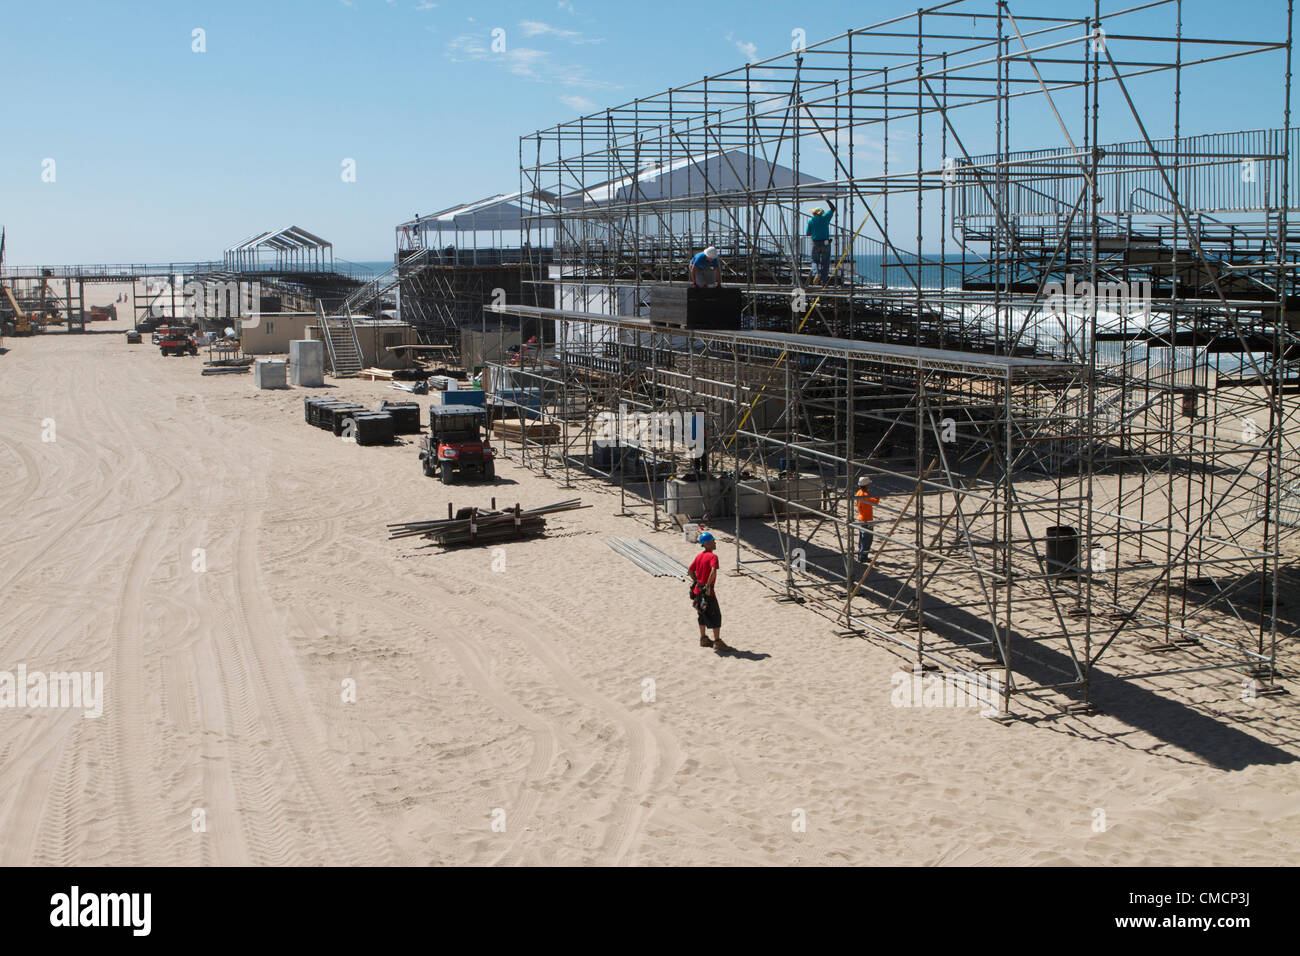 July 19th 2012  Construction crews work on erecting the stands, stadiums ,seating and bleachers south of Huntington Stock Photo